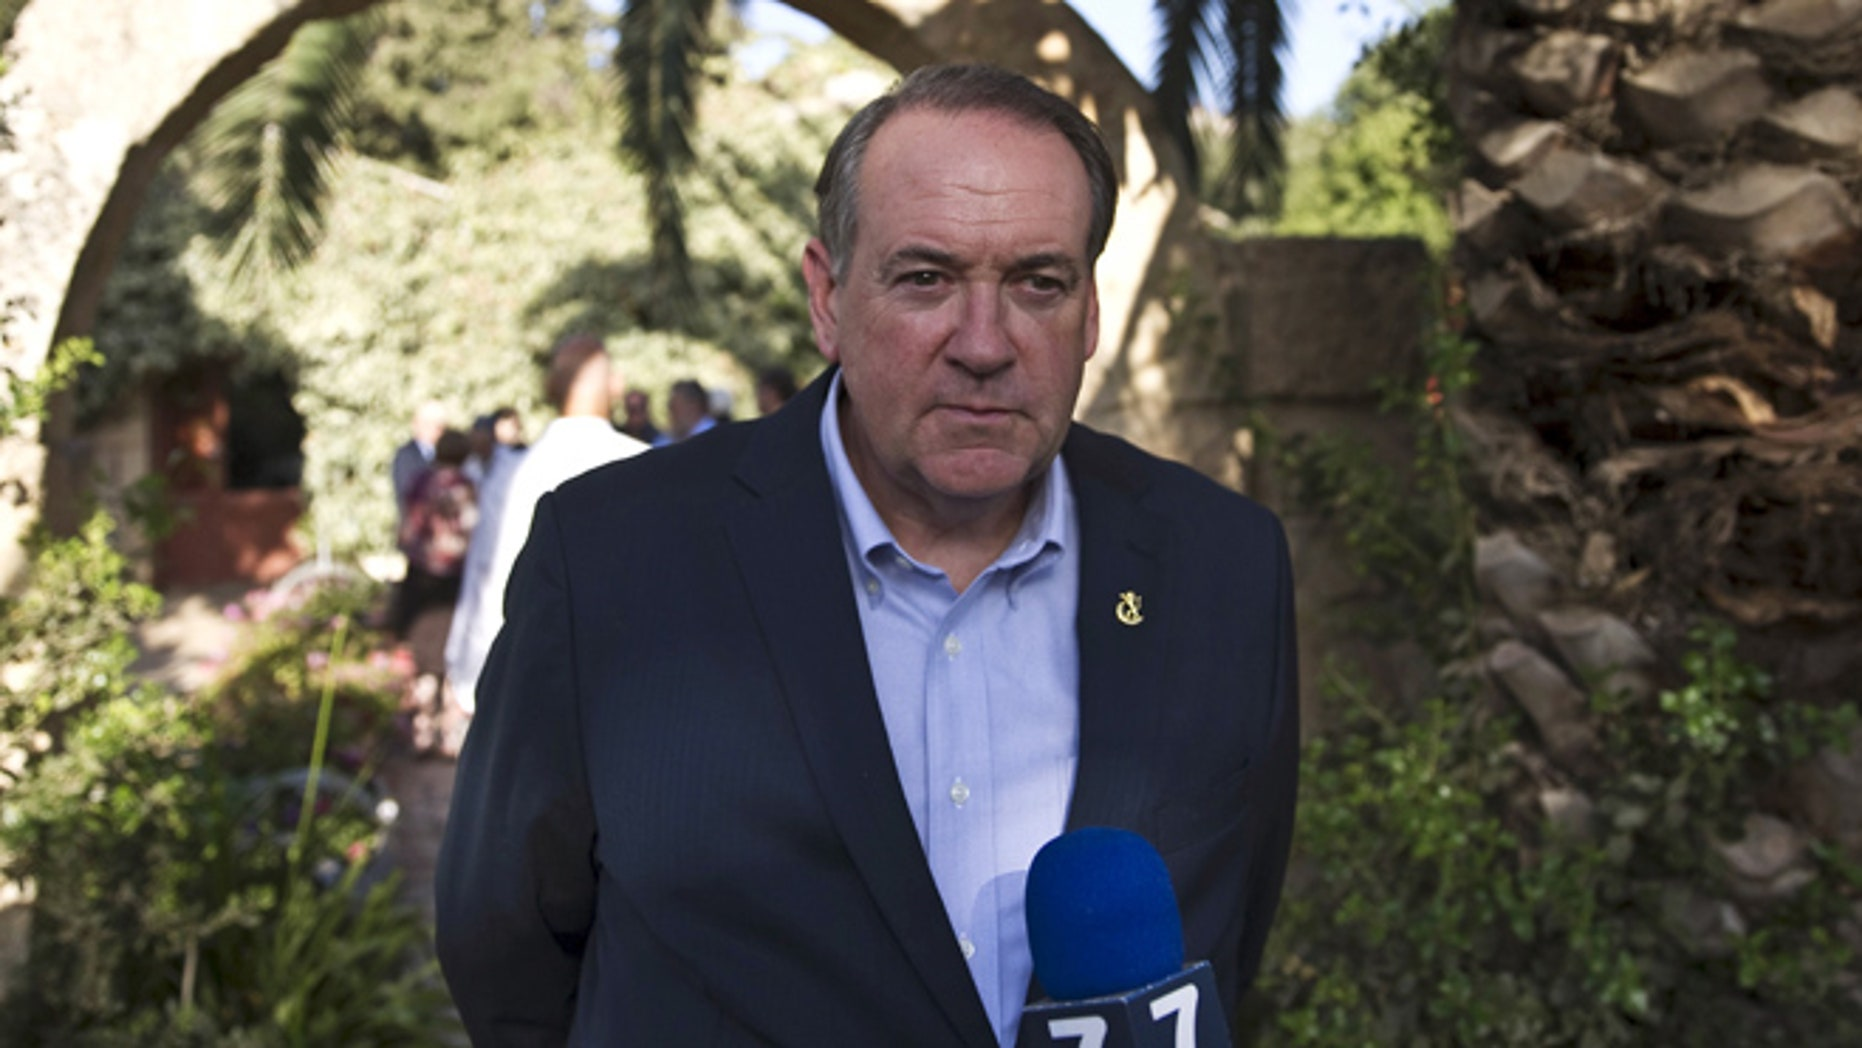 Aug. 18, 2015: Mike Huckabee, Republican presidential candidate and former Arkansas governor, takes part in a news conference near the West Bank Jewish settlement of Shiloh. (Reuters)